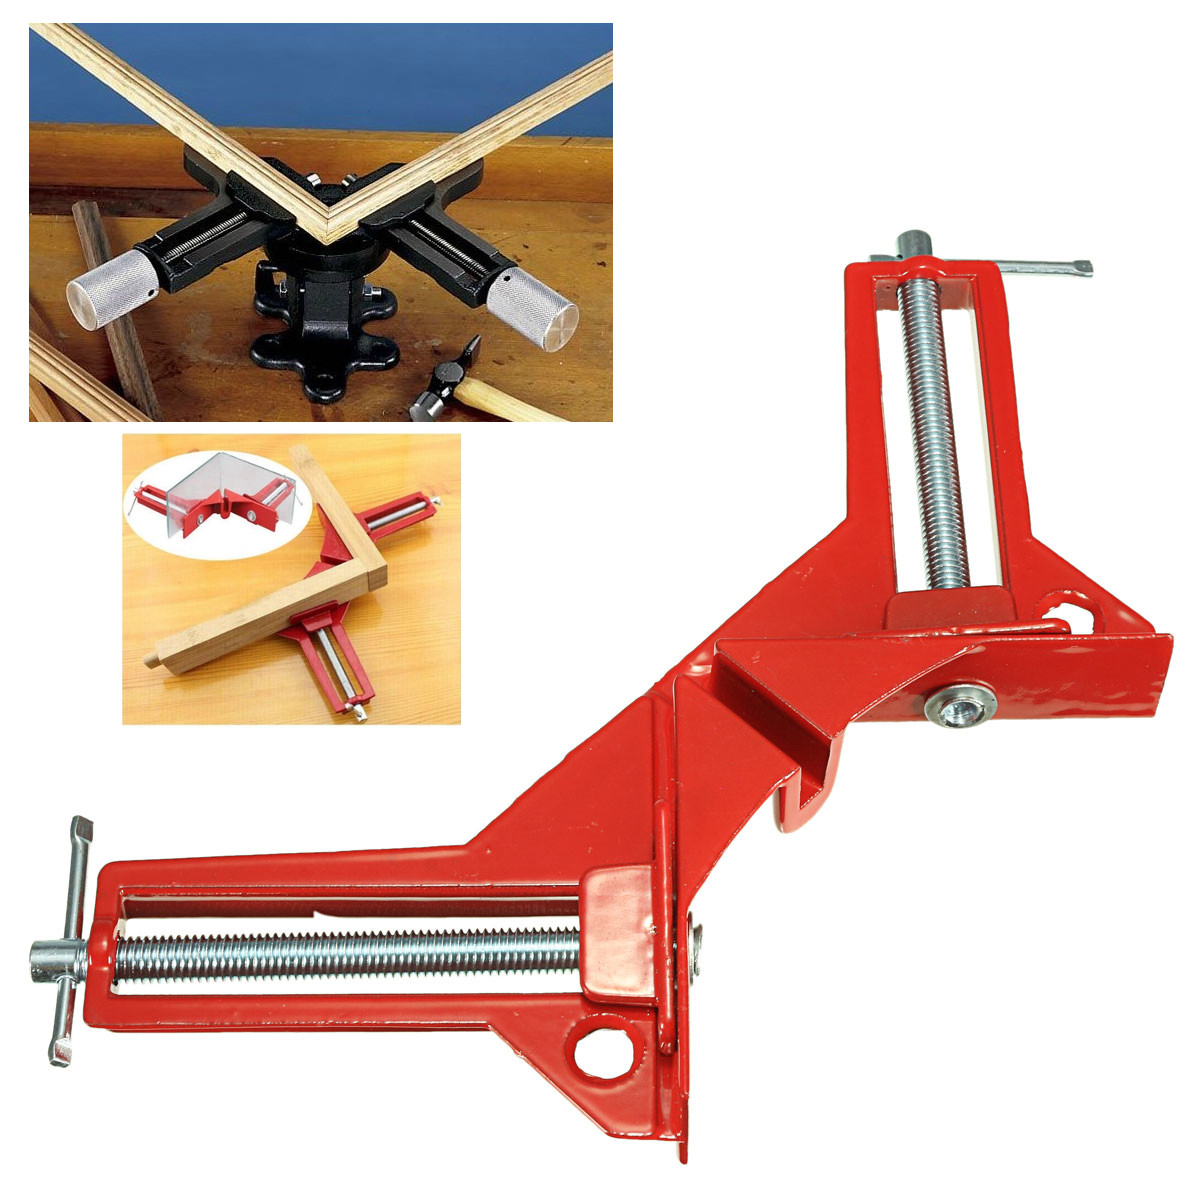 90 Degree Right Angle Picture Frame Corner Clamp Holder Woodworking Hand Kit Right Angle Corner Clamp Miter Vise Vice Picture